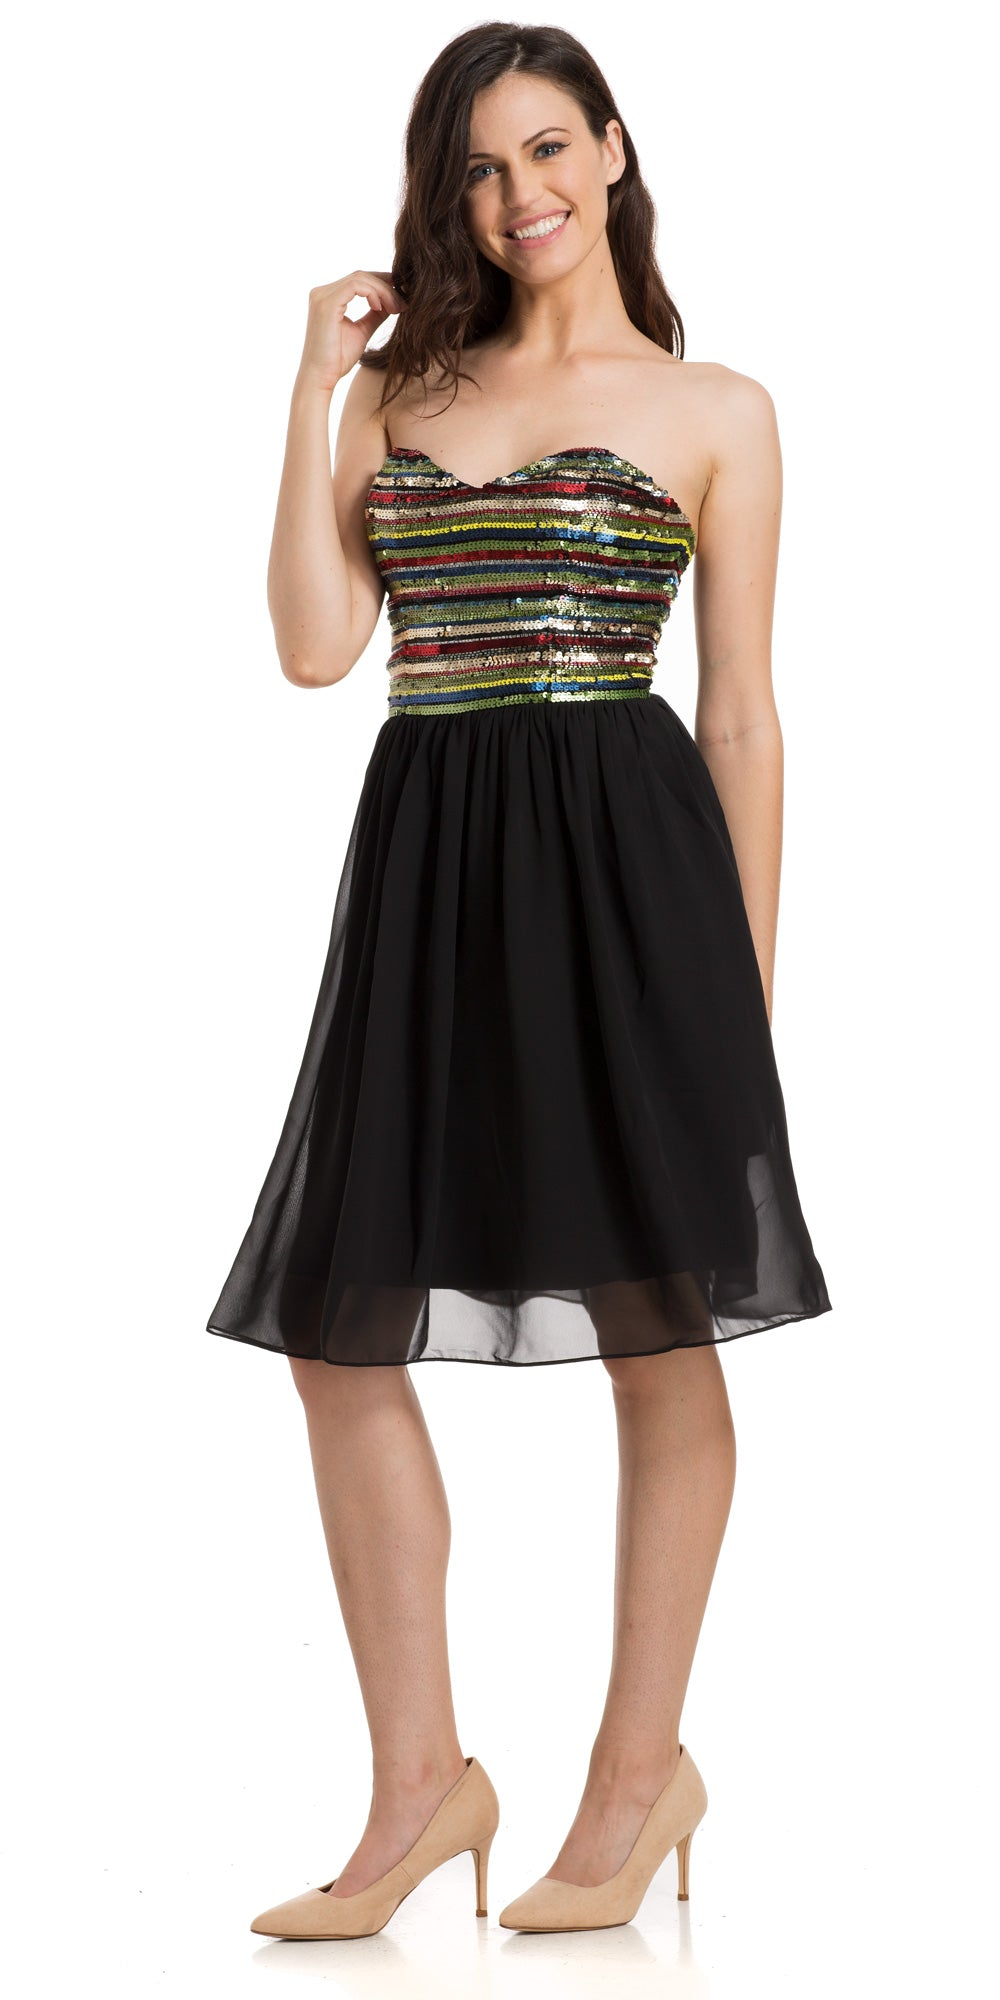 Main image of Strapless Sweetheart Neck Knee Length Cocktail Party Dress